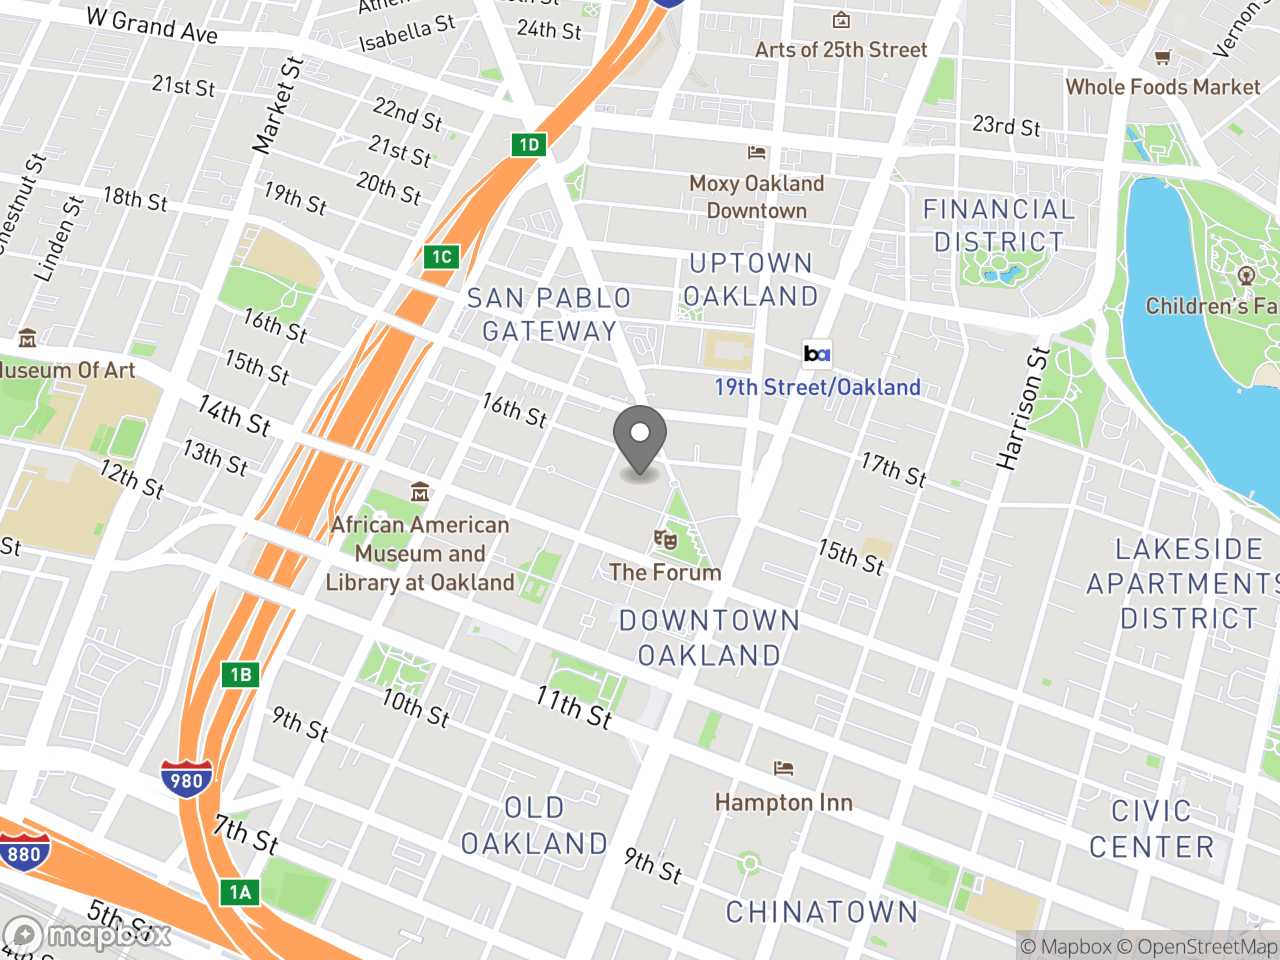 Map image for Finance, located at 250 Frank H. Ogawa Plaza in Oakland, CA 94612